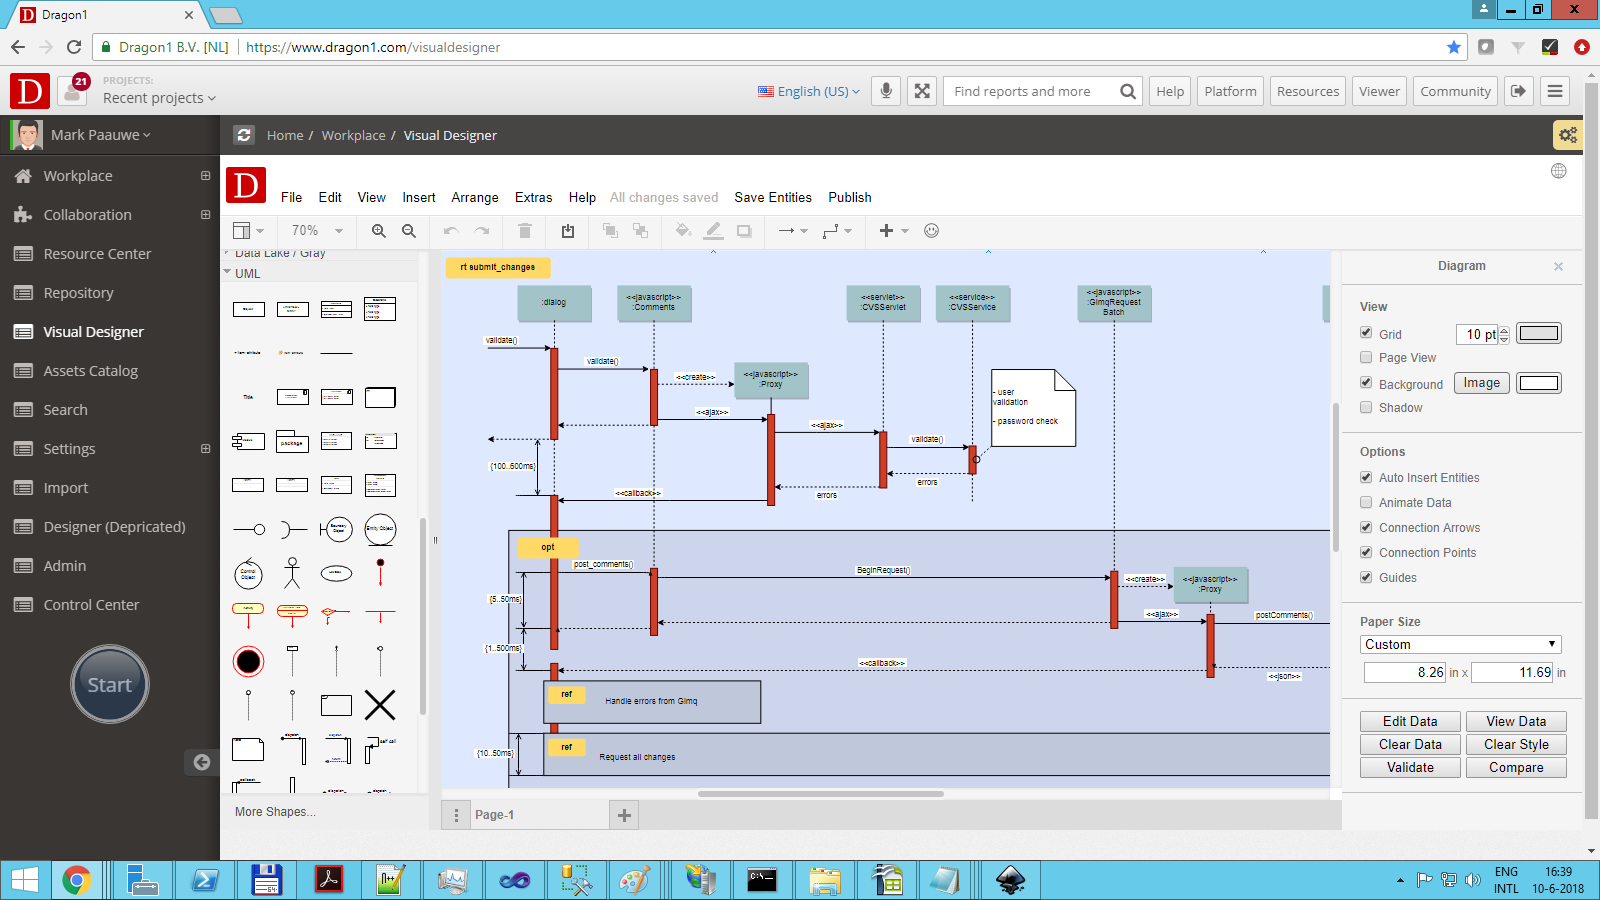 Uml Diagram Tool Online | Uml Tool Dragon1